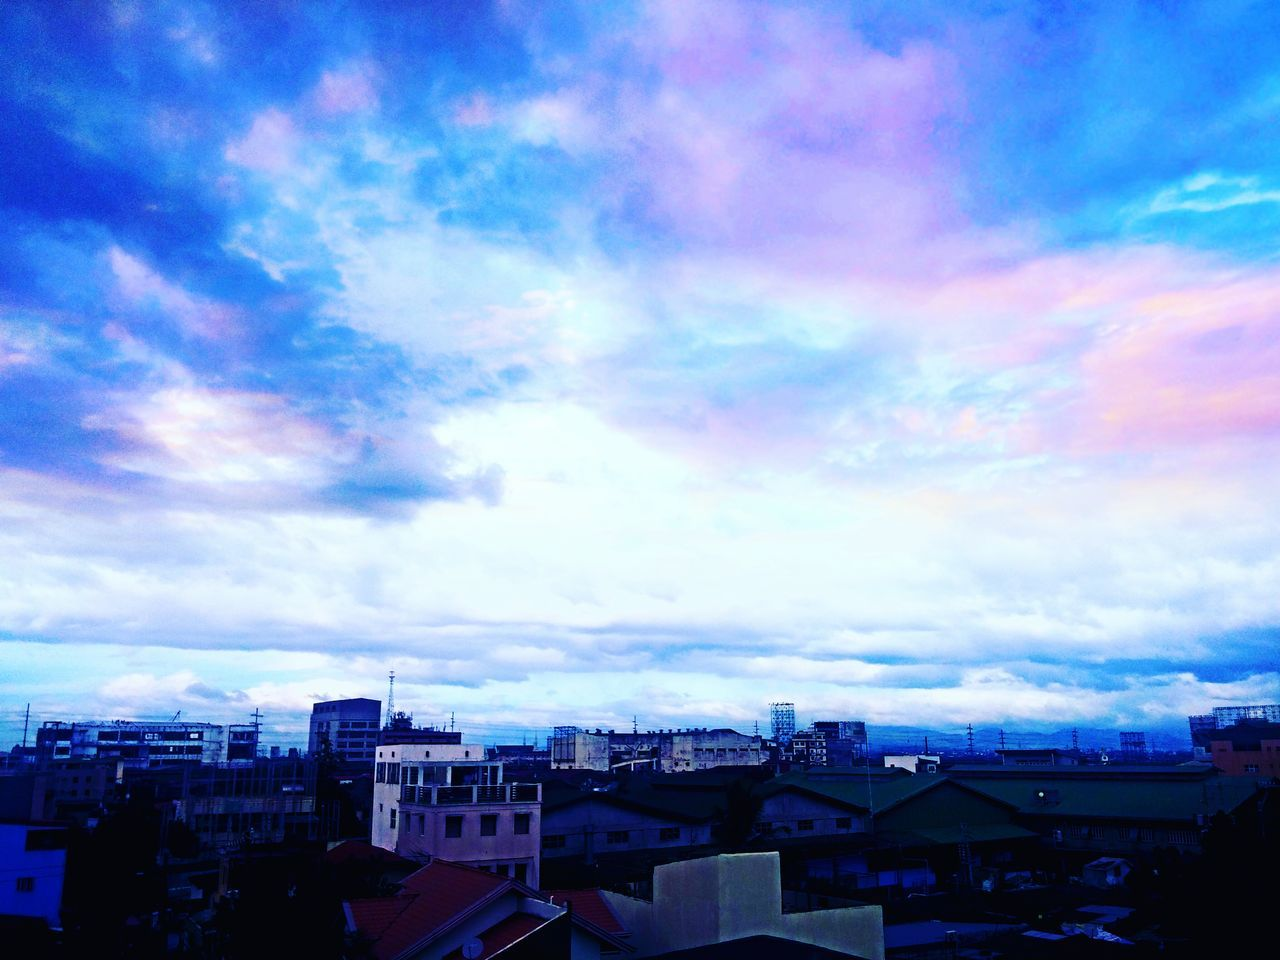 architecture, building exterior, built structure, sky, cloud - sky, no people, residential building, house, outdoors, city, cityscape, day, roof, nature